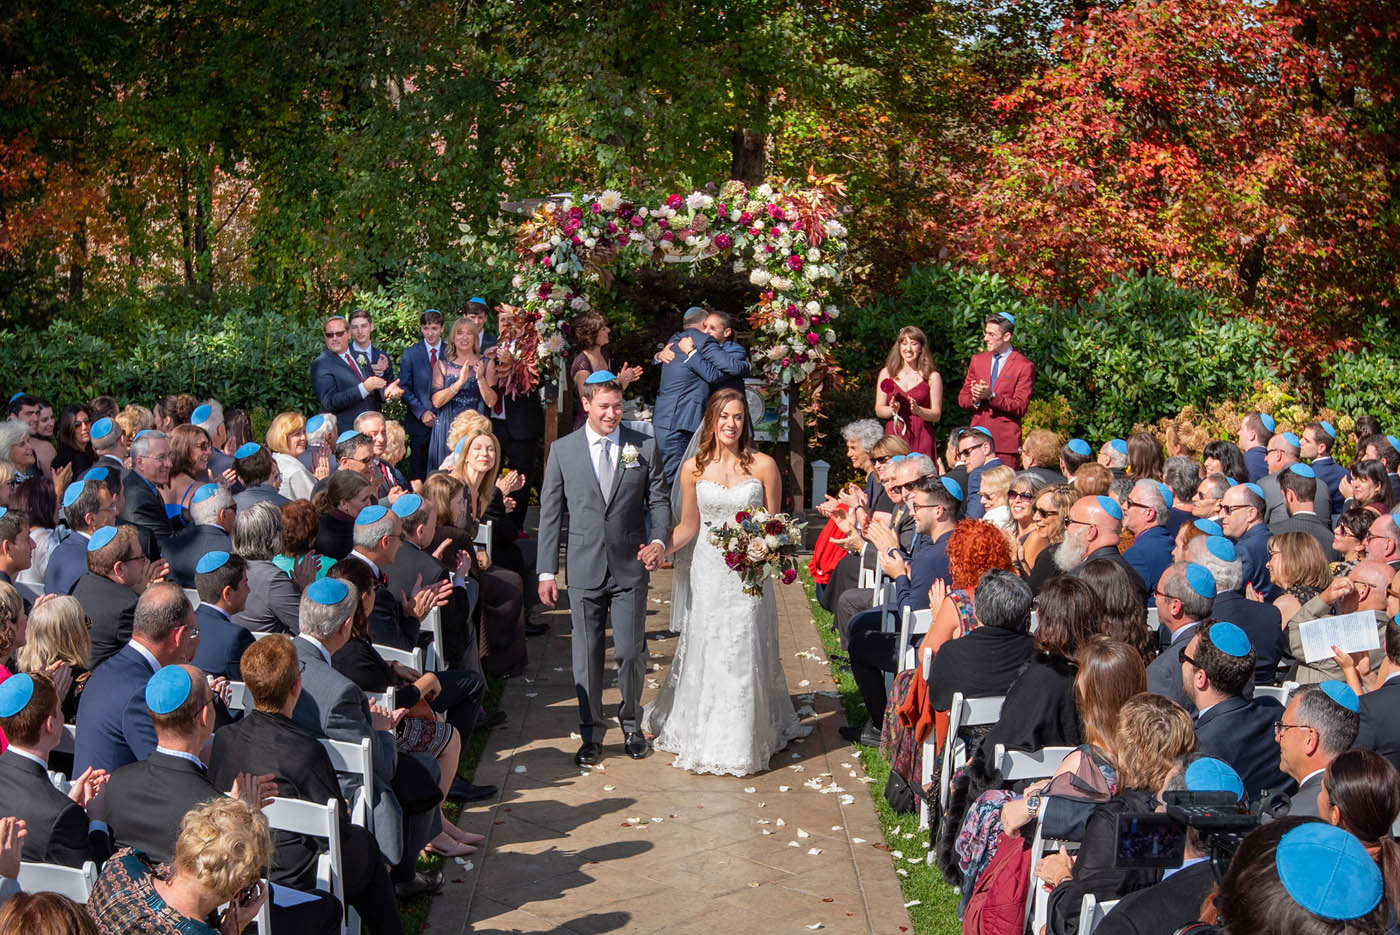 outdoor wedding ceremony at Avenir Walpole MA